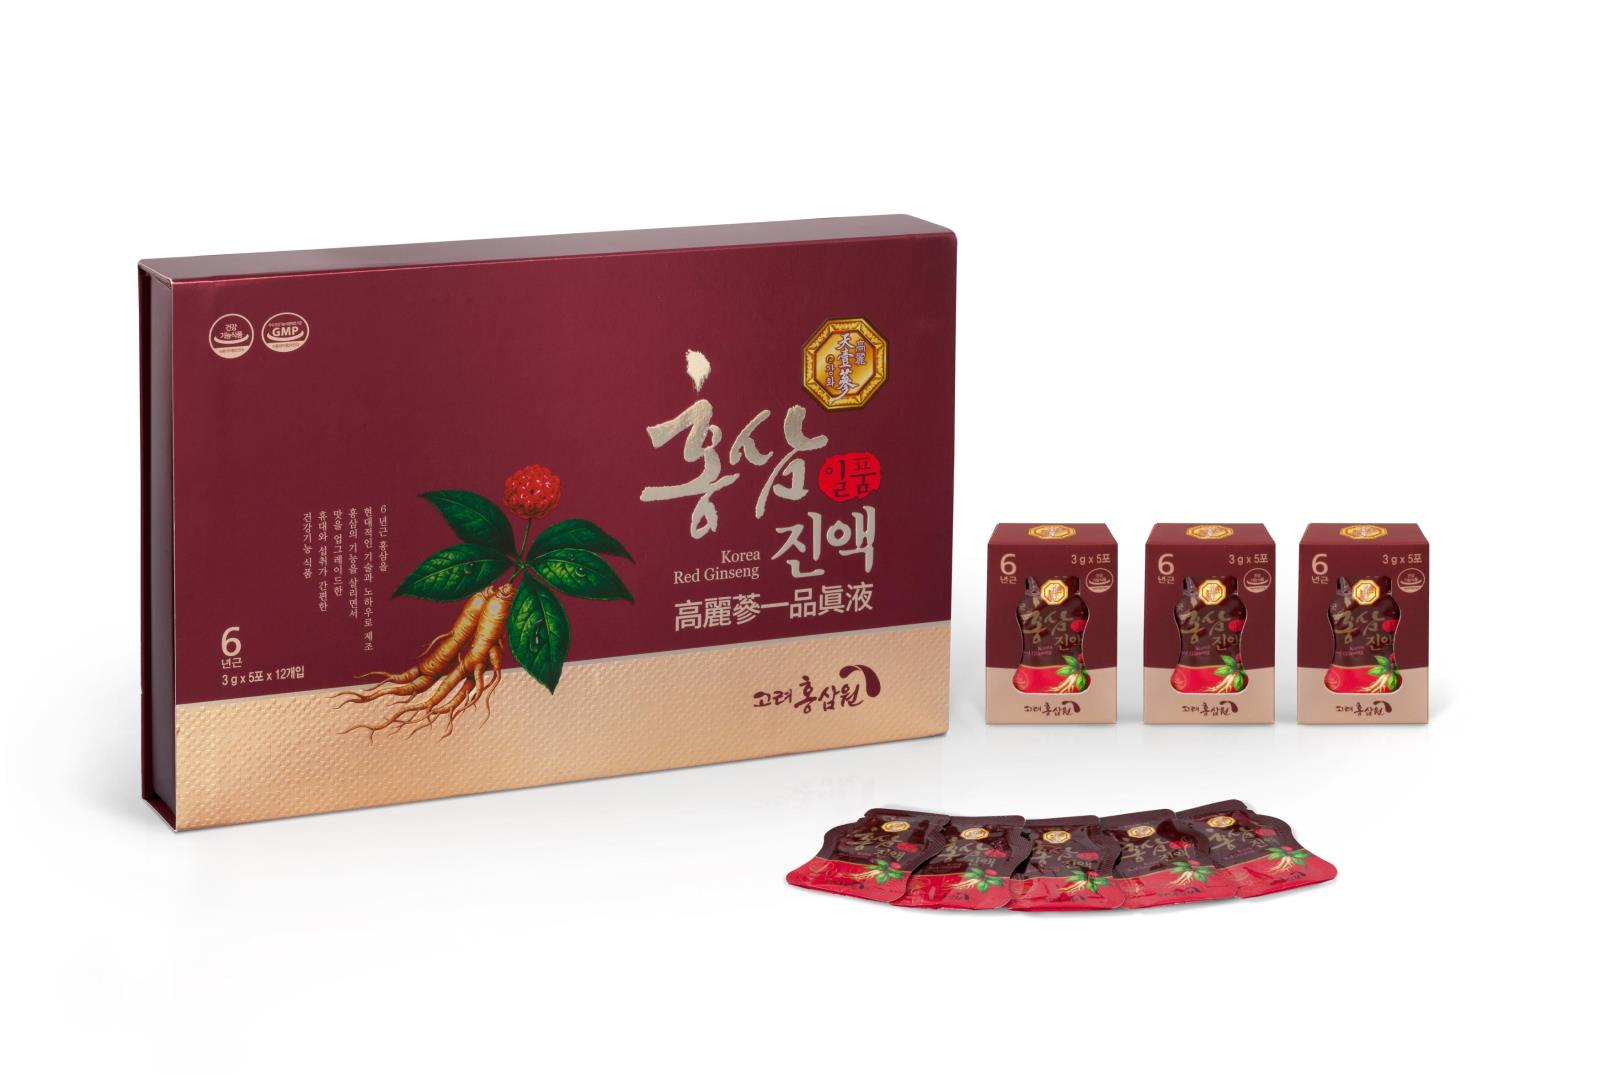 Korea Ginseng products